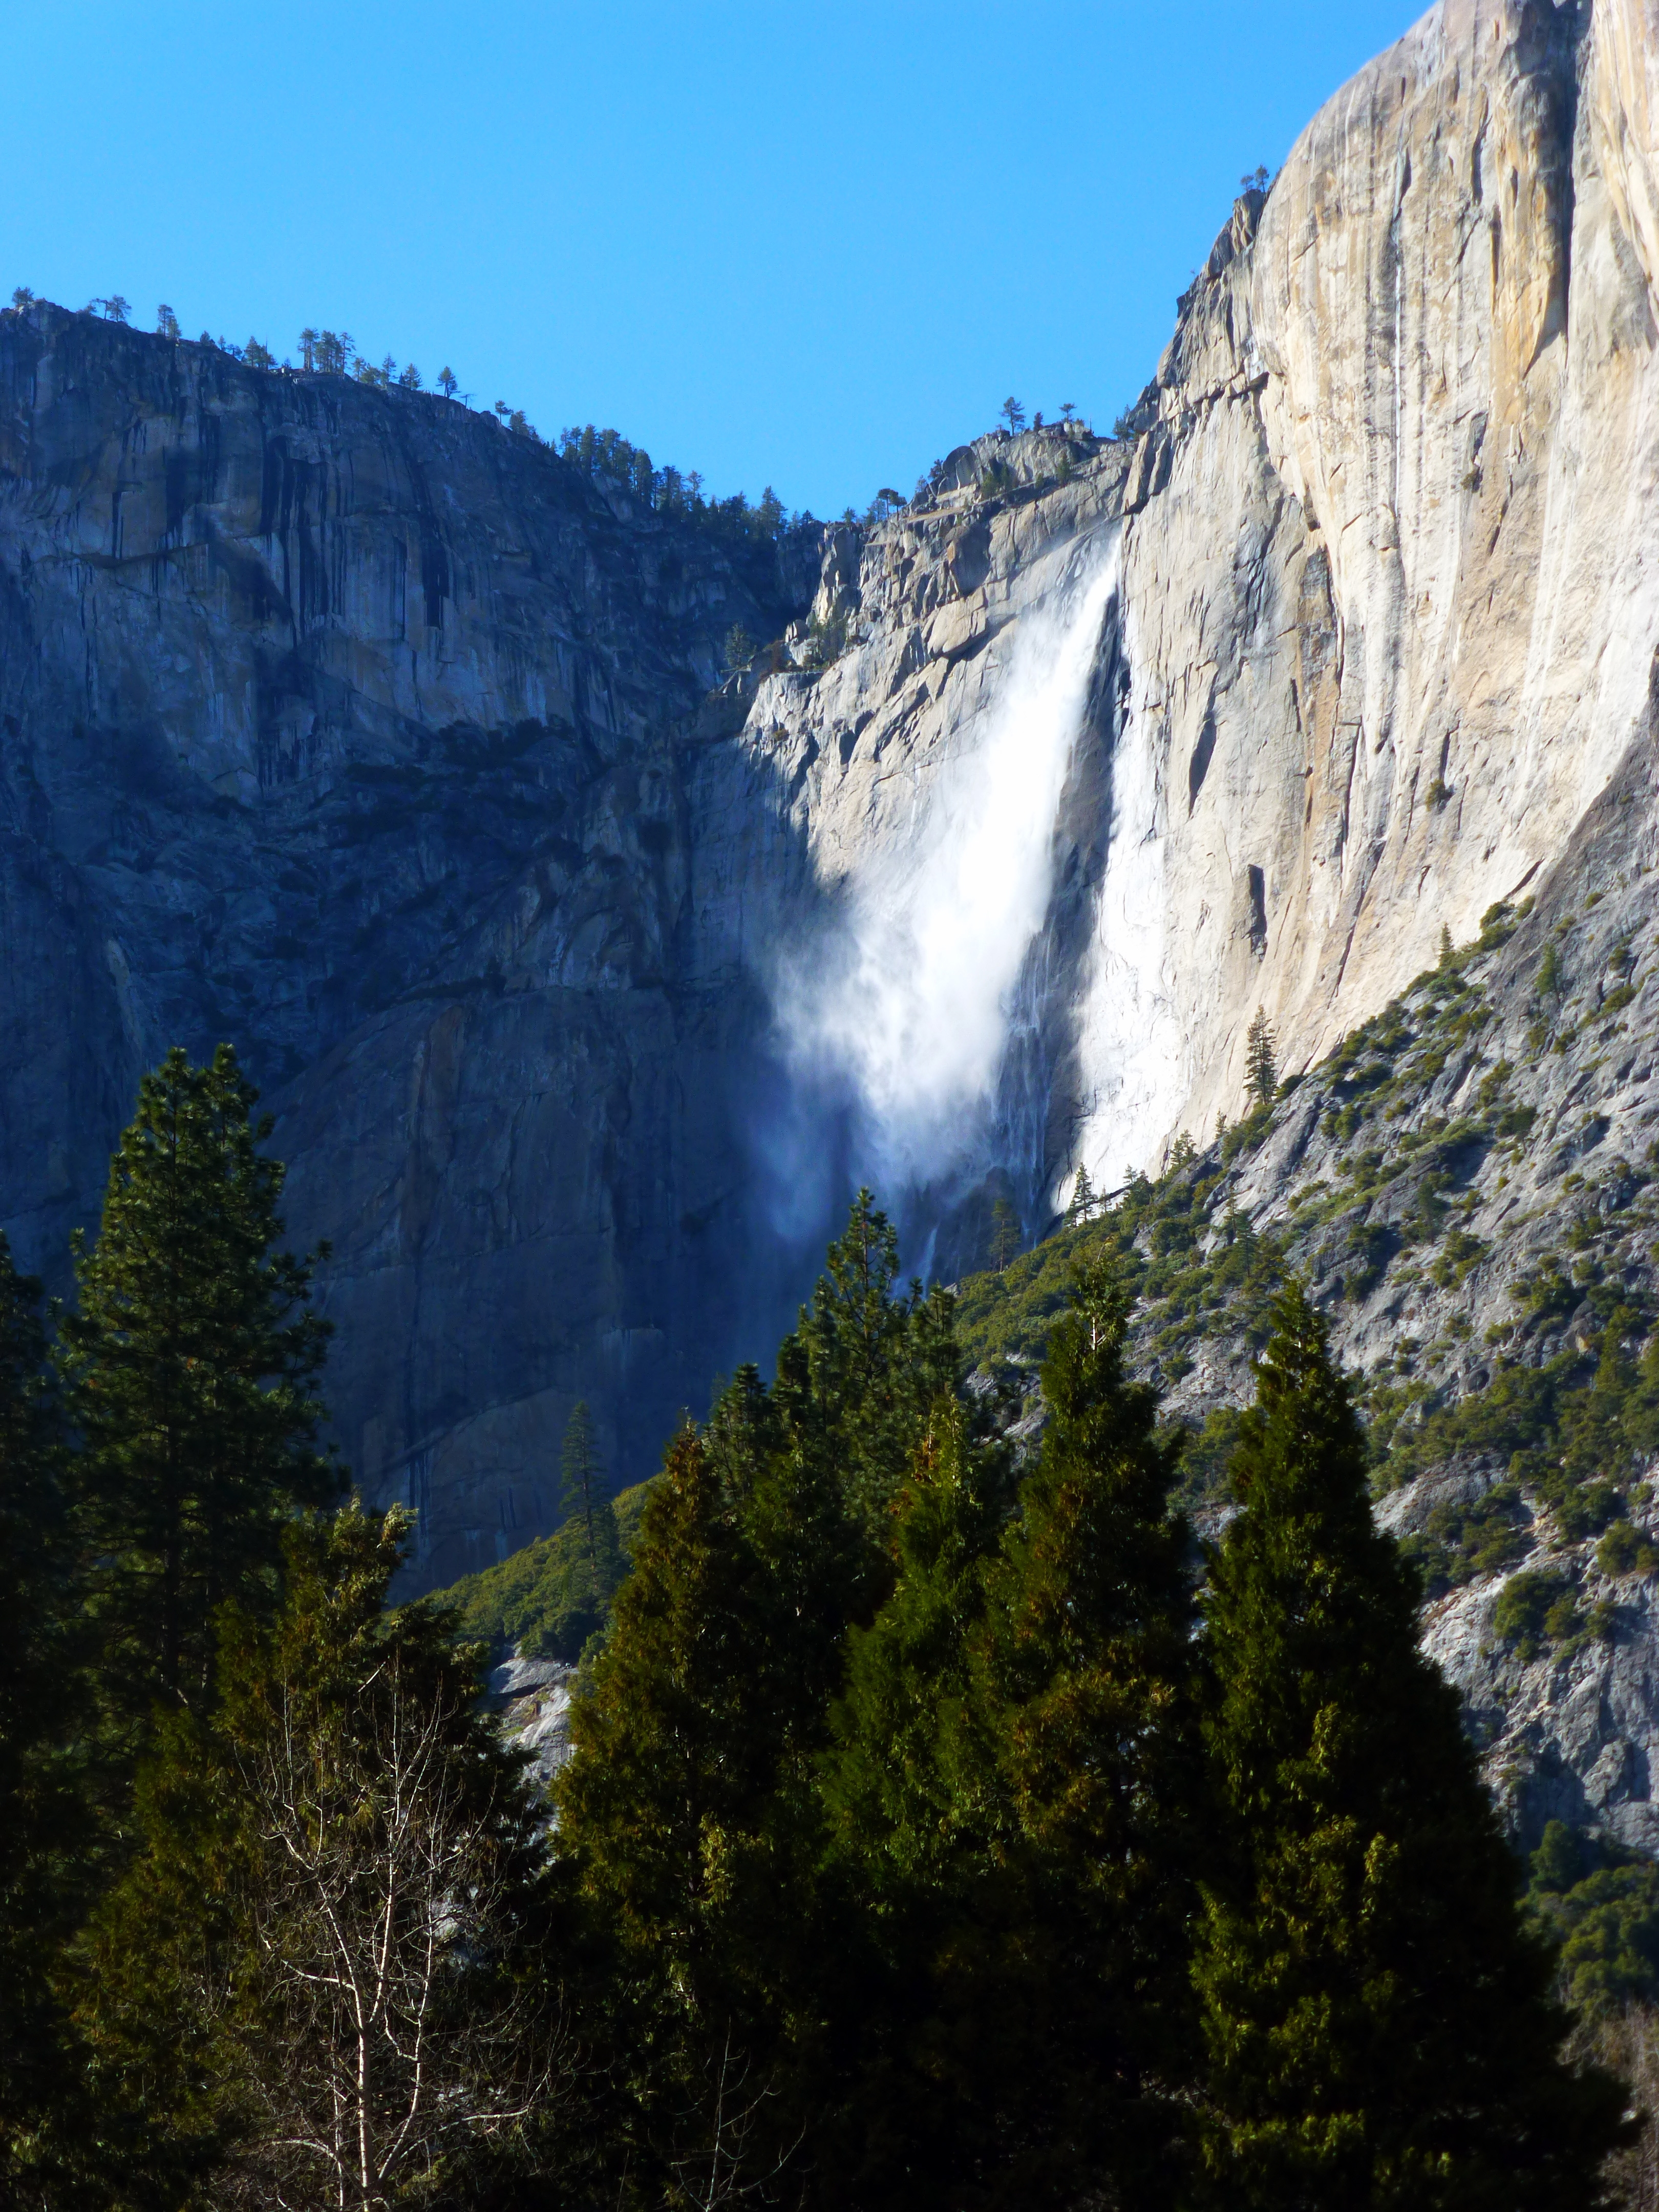 When the hell are they gonna finally just get on with it and install that heli-pad at the foot of Upper Yosemite Falls, just above the lip of Lower Yosemite Falls? I mean... how many Darwinian deaths will it take? Sweet Jesus, I beg of you... HOW MANY?!?!? (photo by D. Speredelozzi)